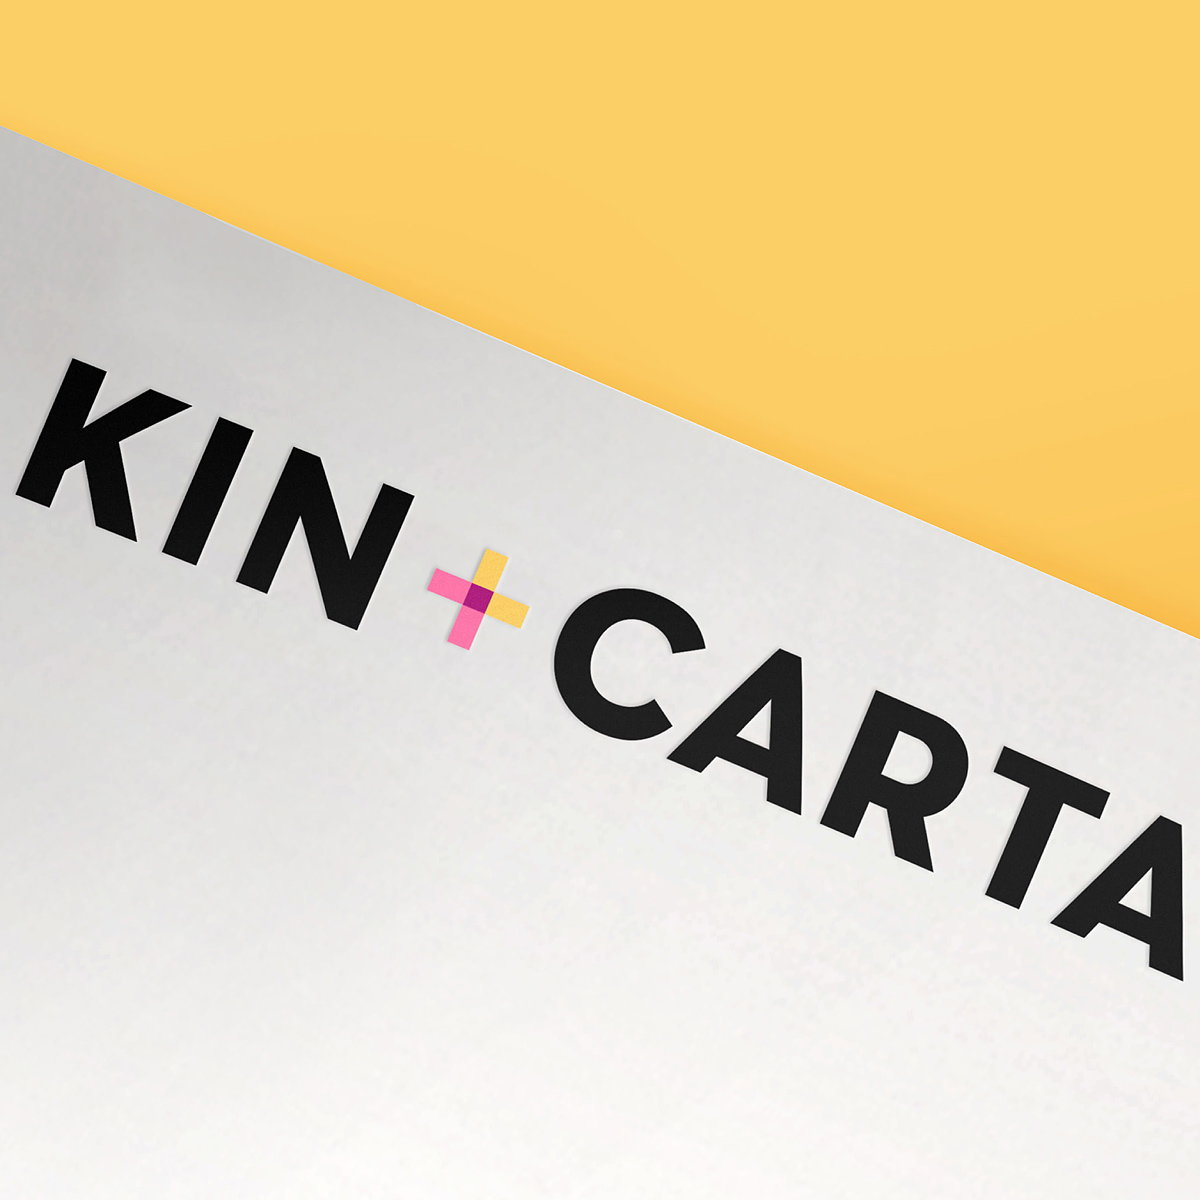 Carter Wong Unveils New Visual Identity for Kin and Carta